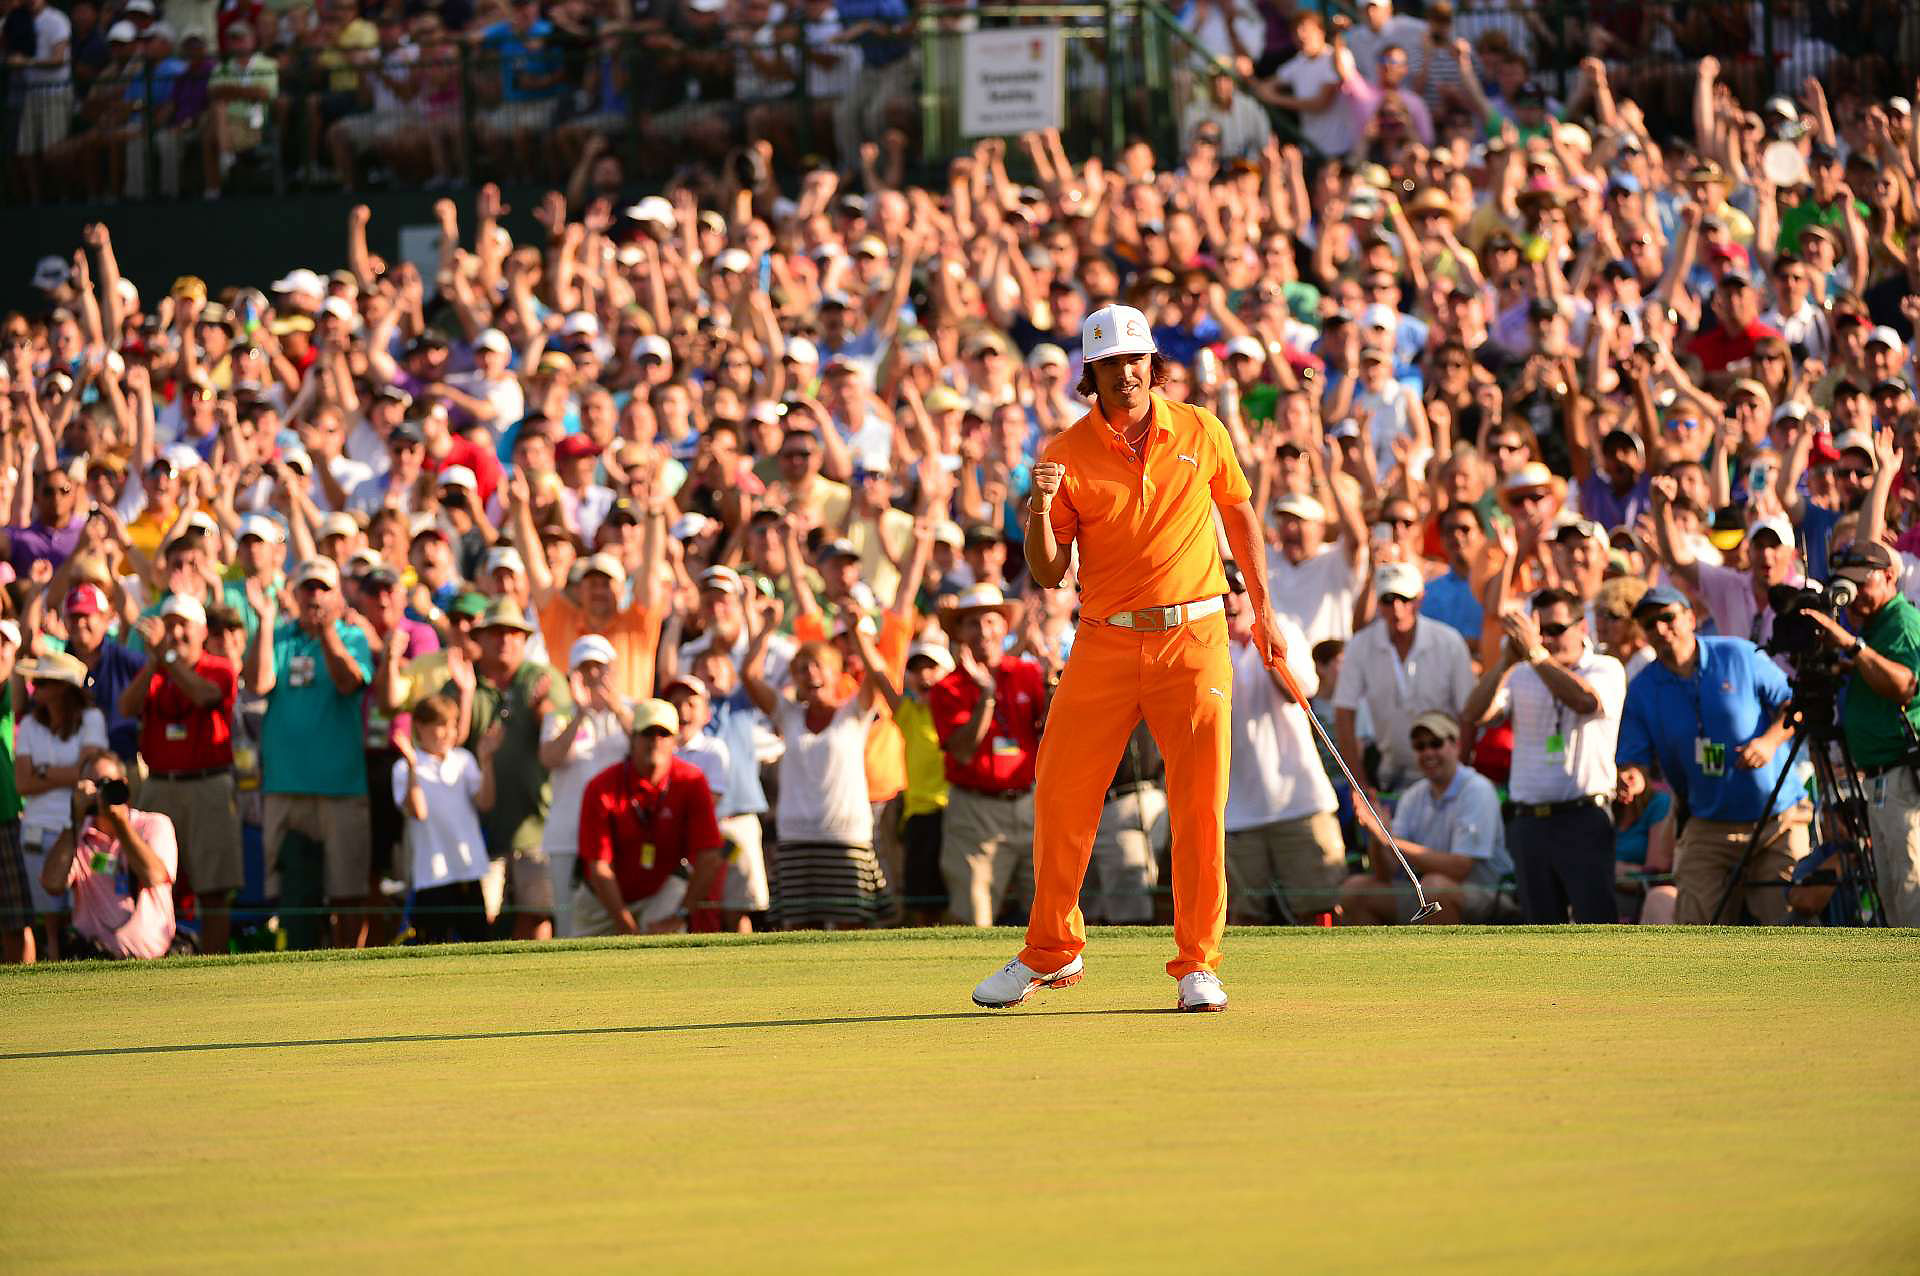 Rickie Fowler wins the 2012 Wells Fargo Championship.